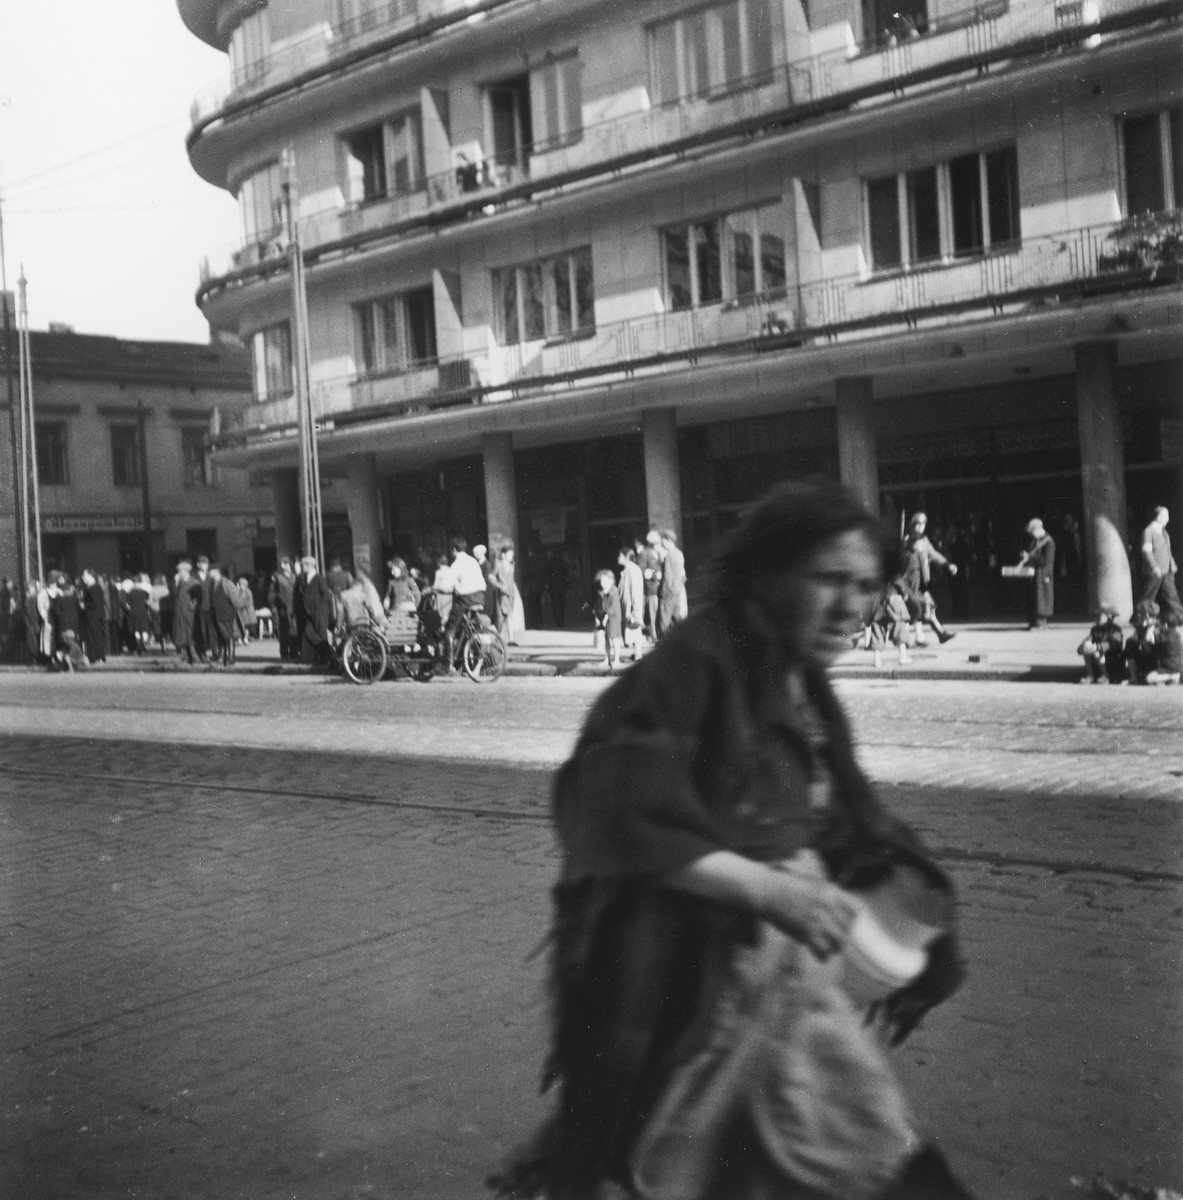 """A woman walking down the street carrying a milkcan  in the Warsaw ghetto.  Joest's original caption reads: """"An old woman with an empty jug - was she fetching milk?  Was there still milk?  In the background to the right of her on the other side of the street, a German soldier, rifle over his shoulder, taking stiff, booted steps."""""""